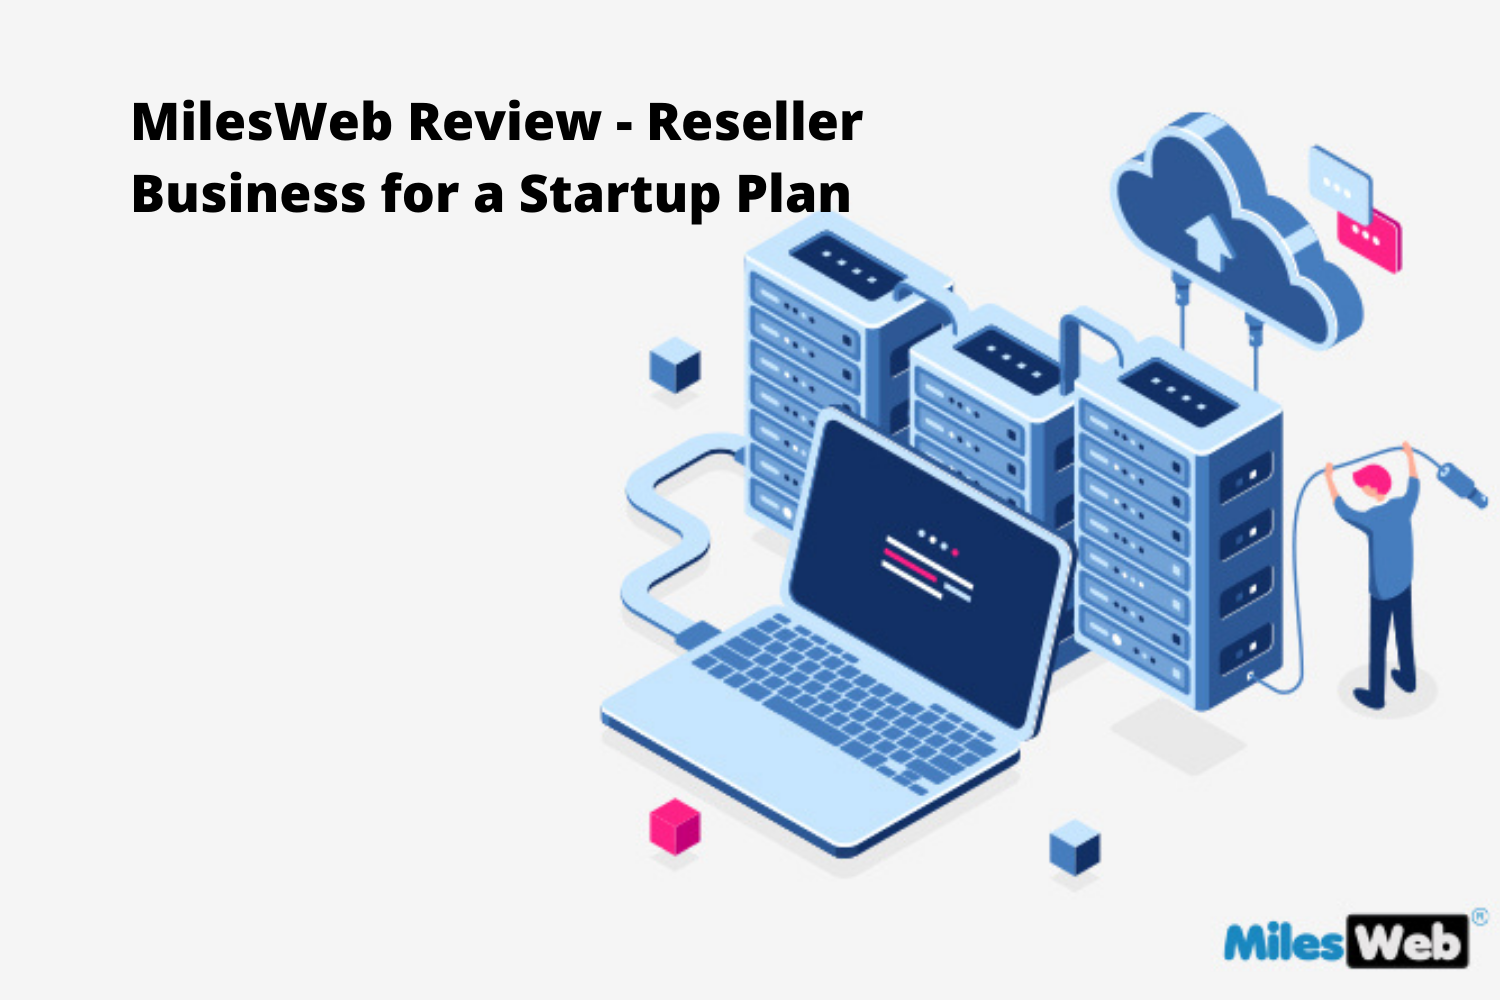 MilesWeb Review – Reseller Business for a Startup Plan